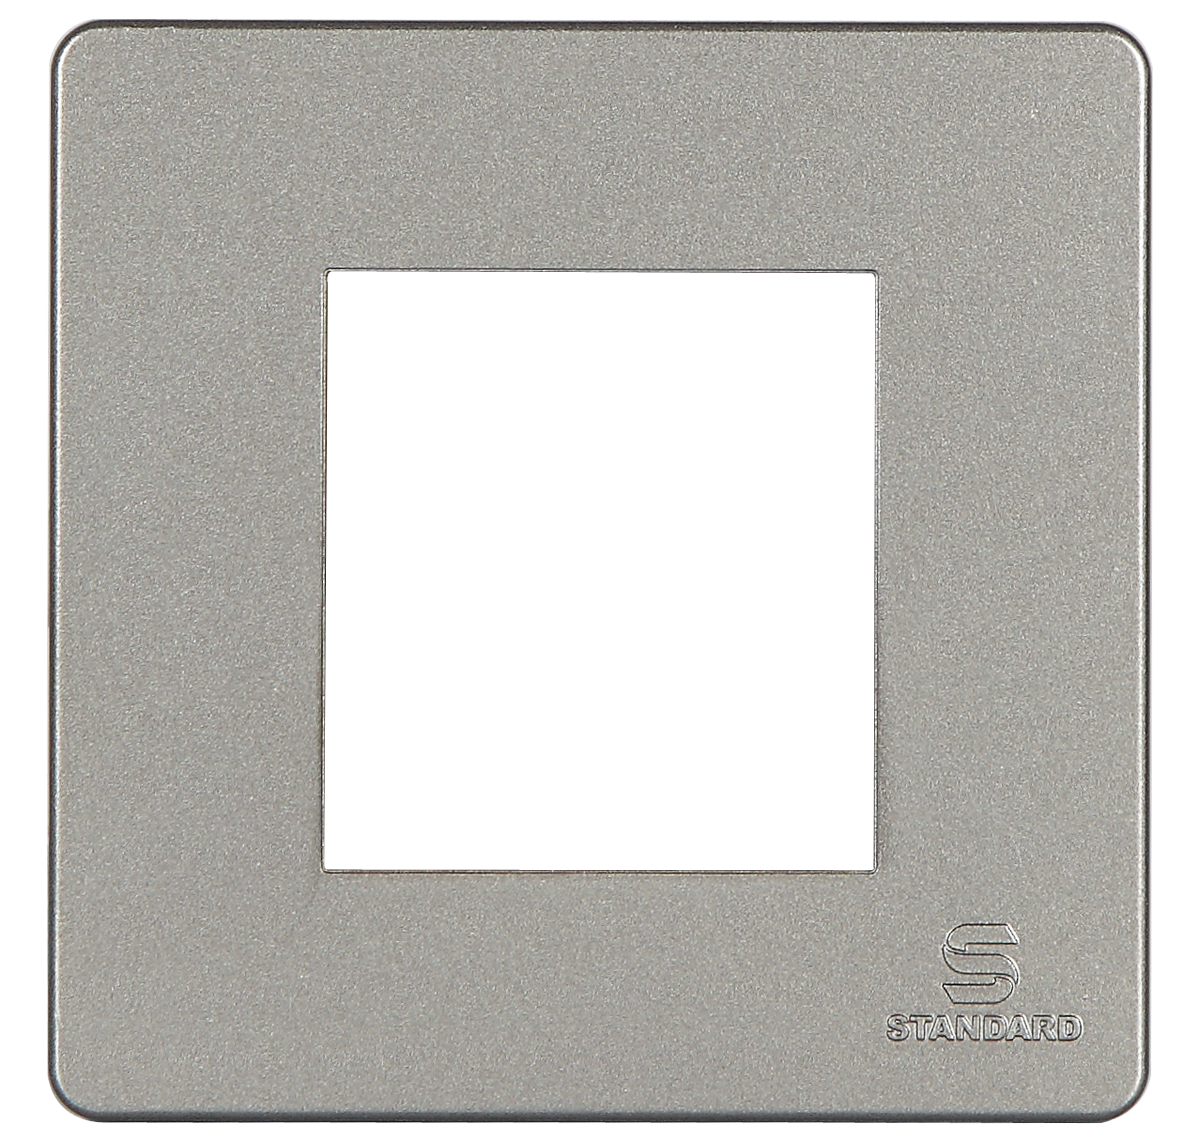 2-m-radiant-grey-cover-plate